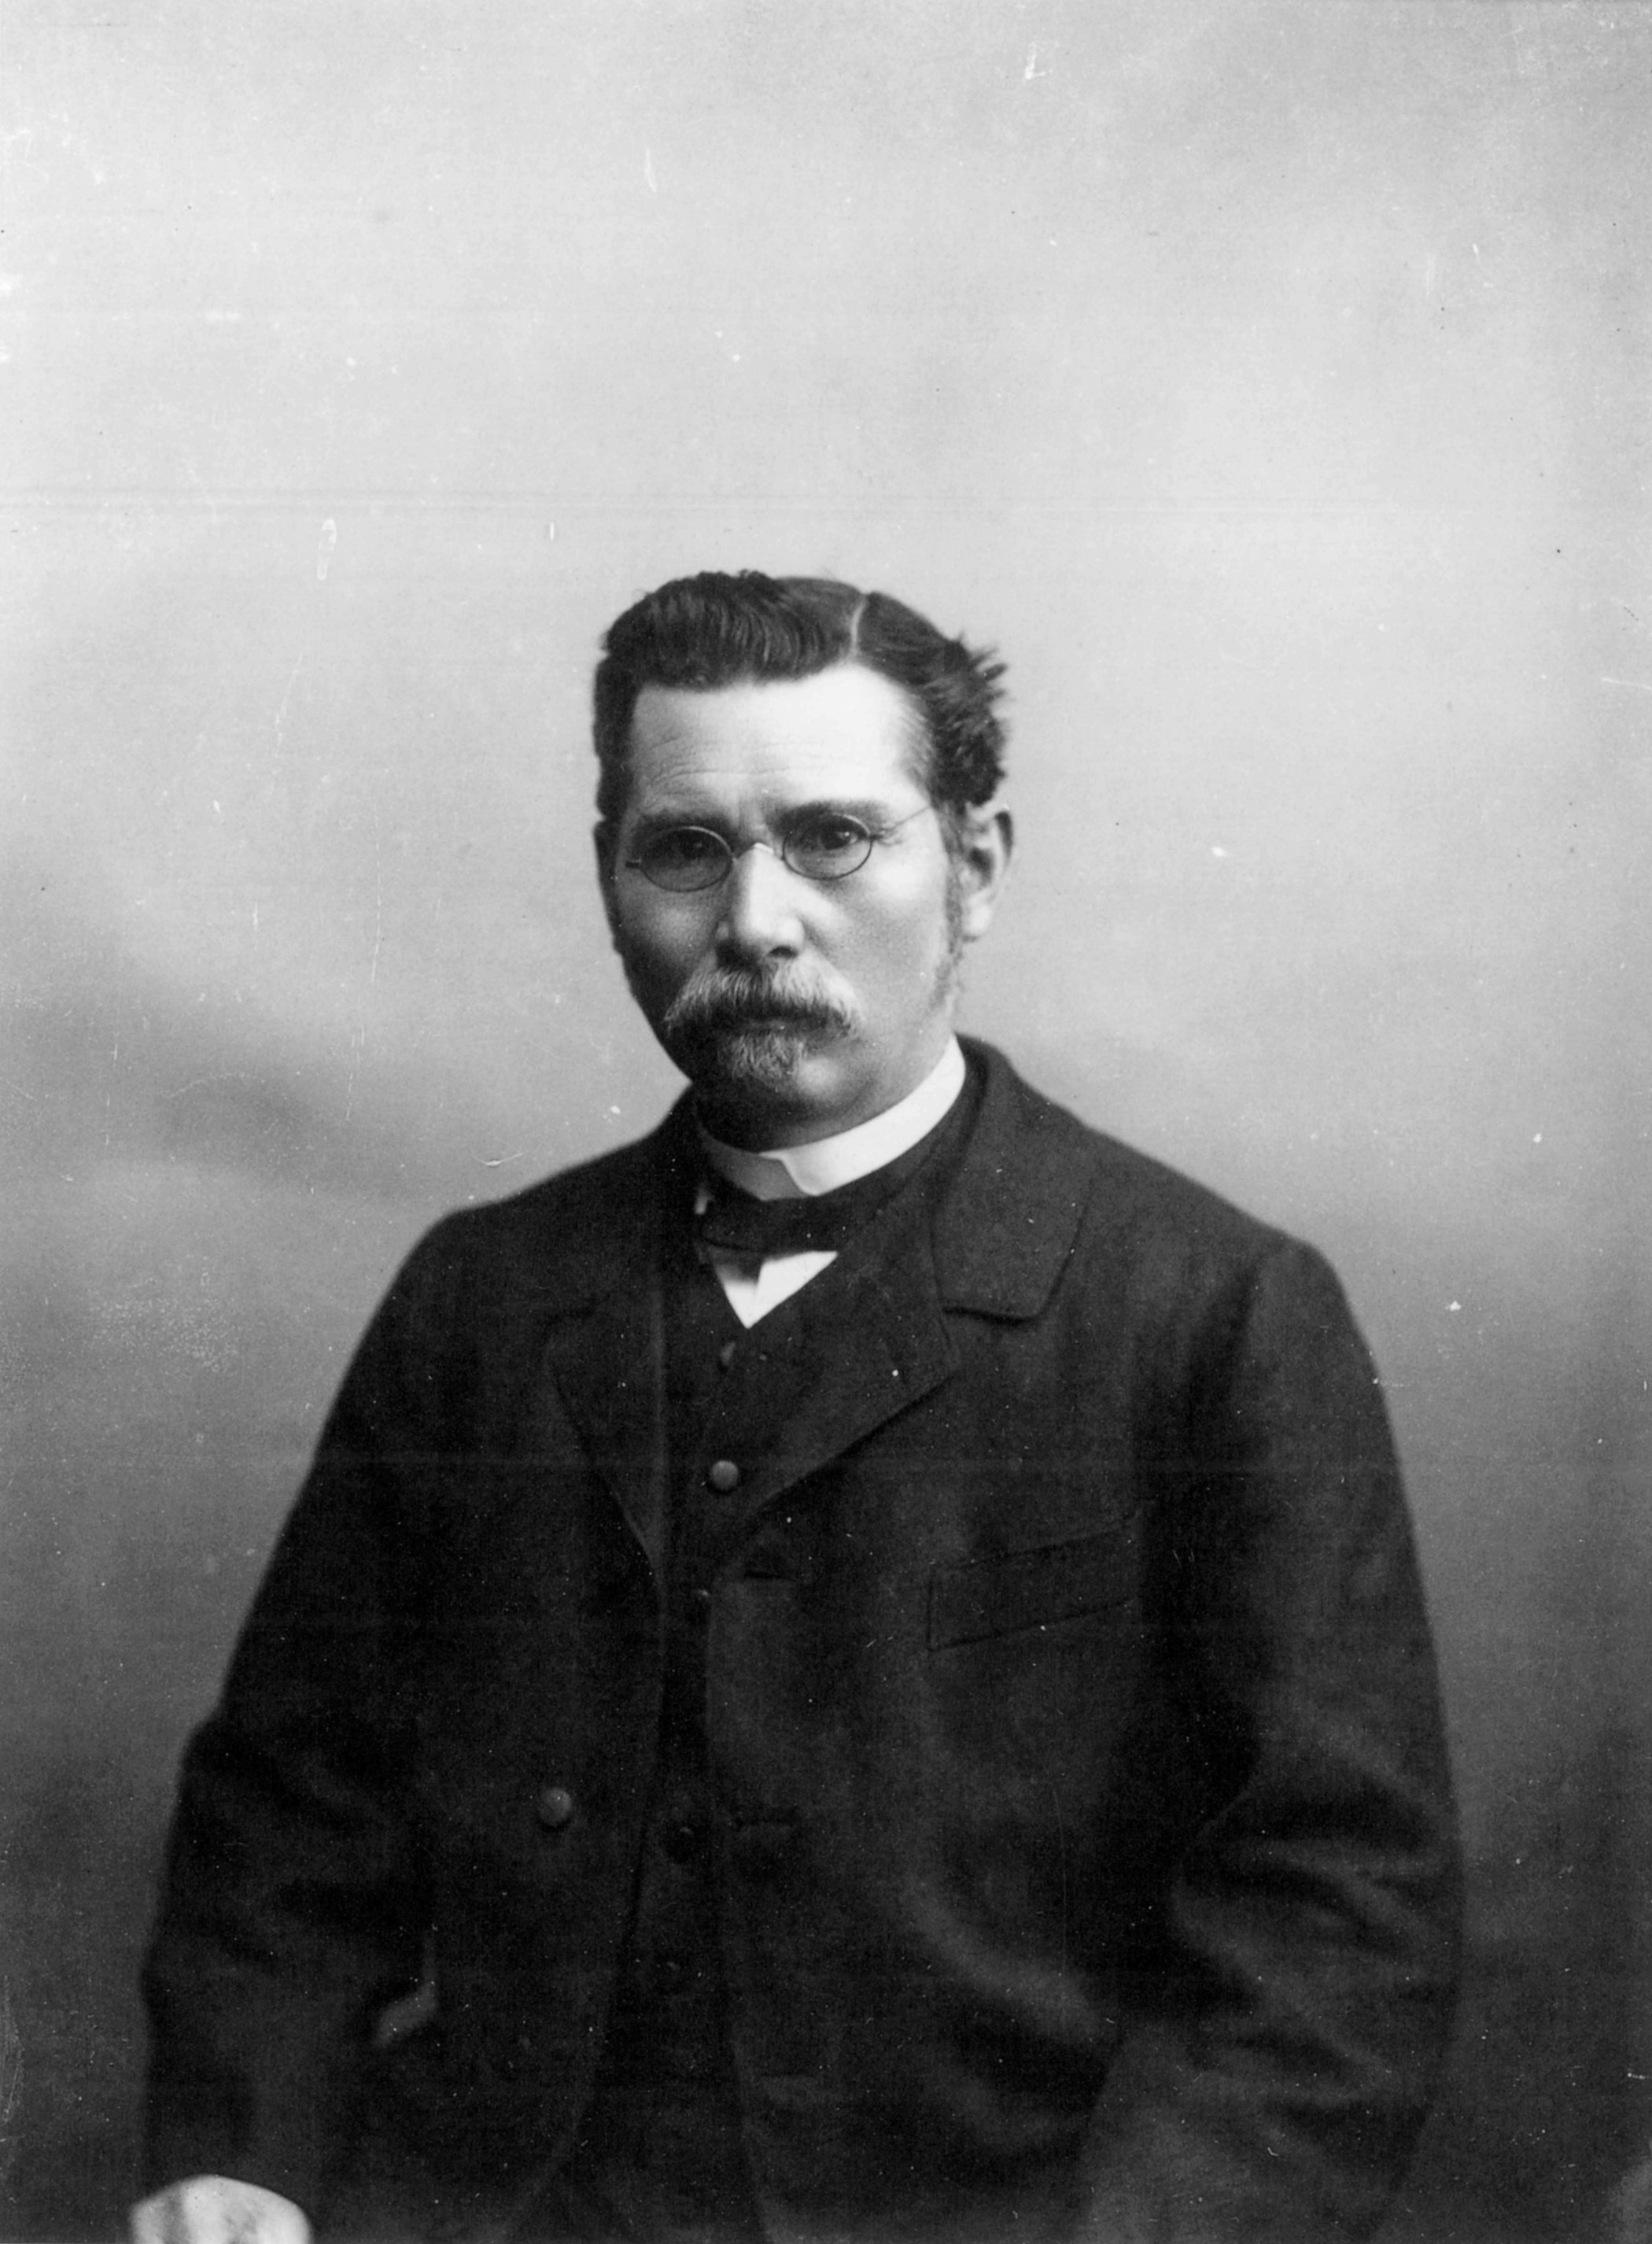 Image of Hermann Walter from Wikidata